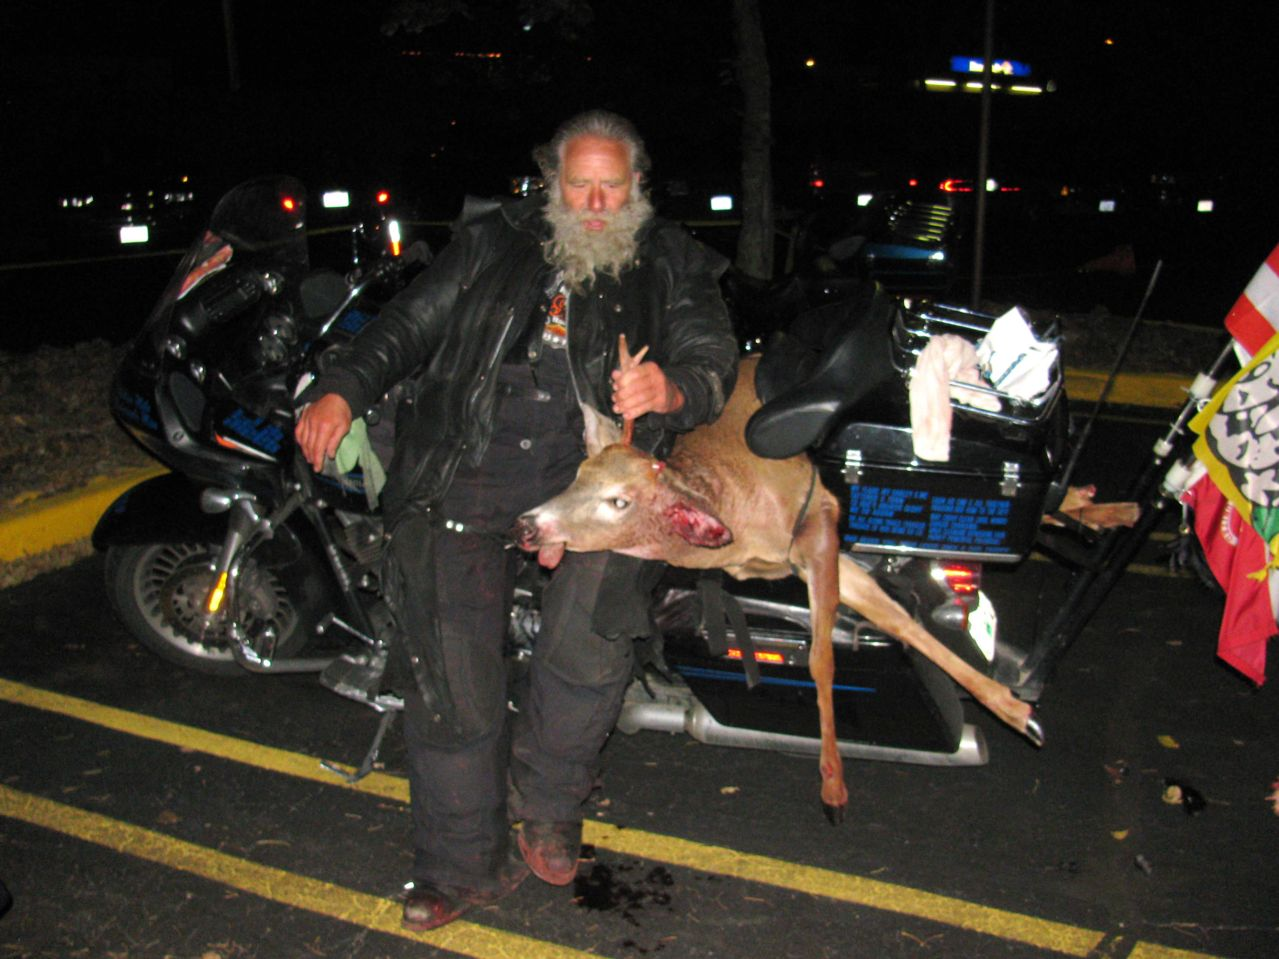 Former Wisconsin State Senator Dave Zien, after hitting a deer with his motorcycle in October, 2010.